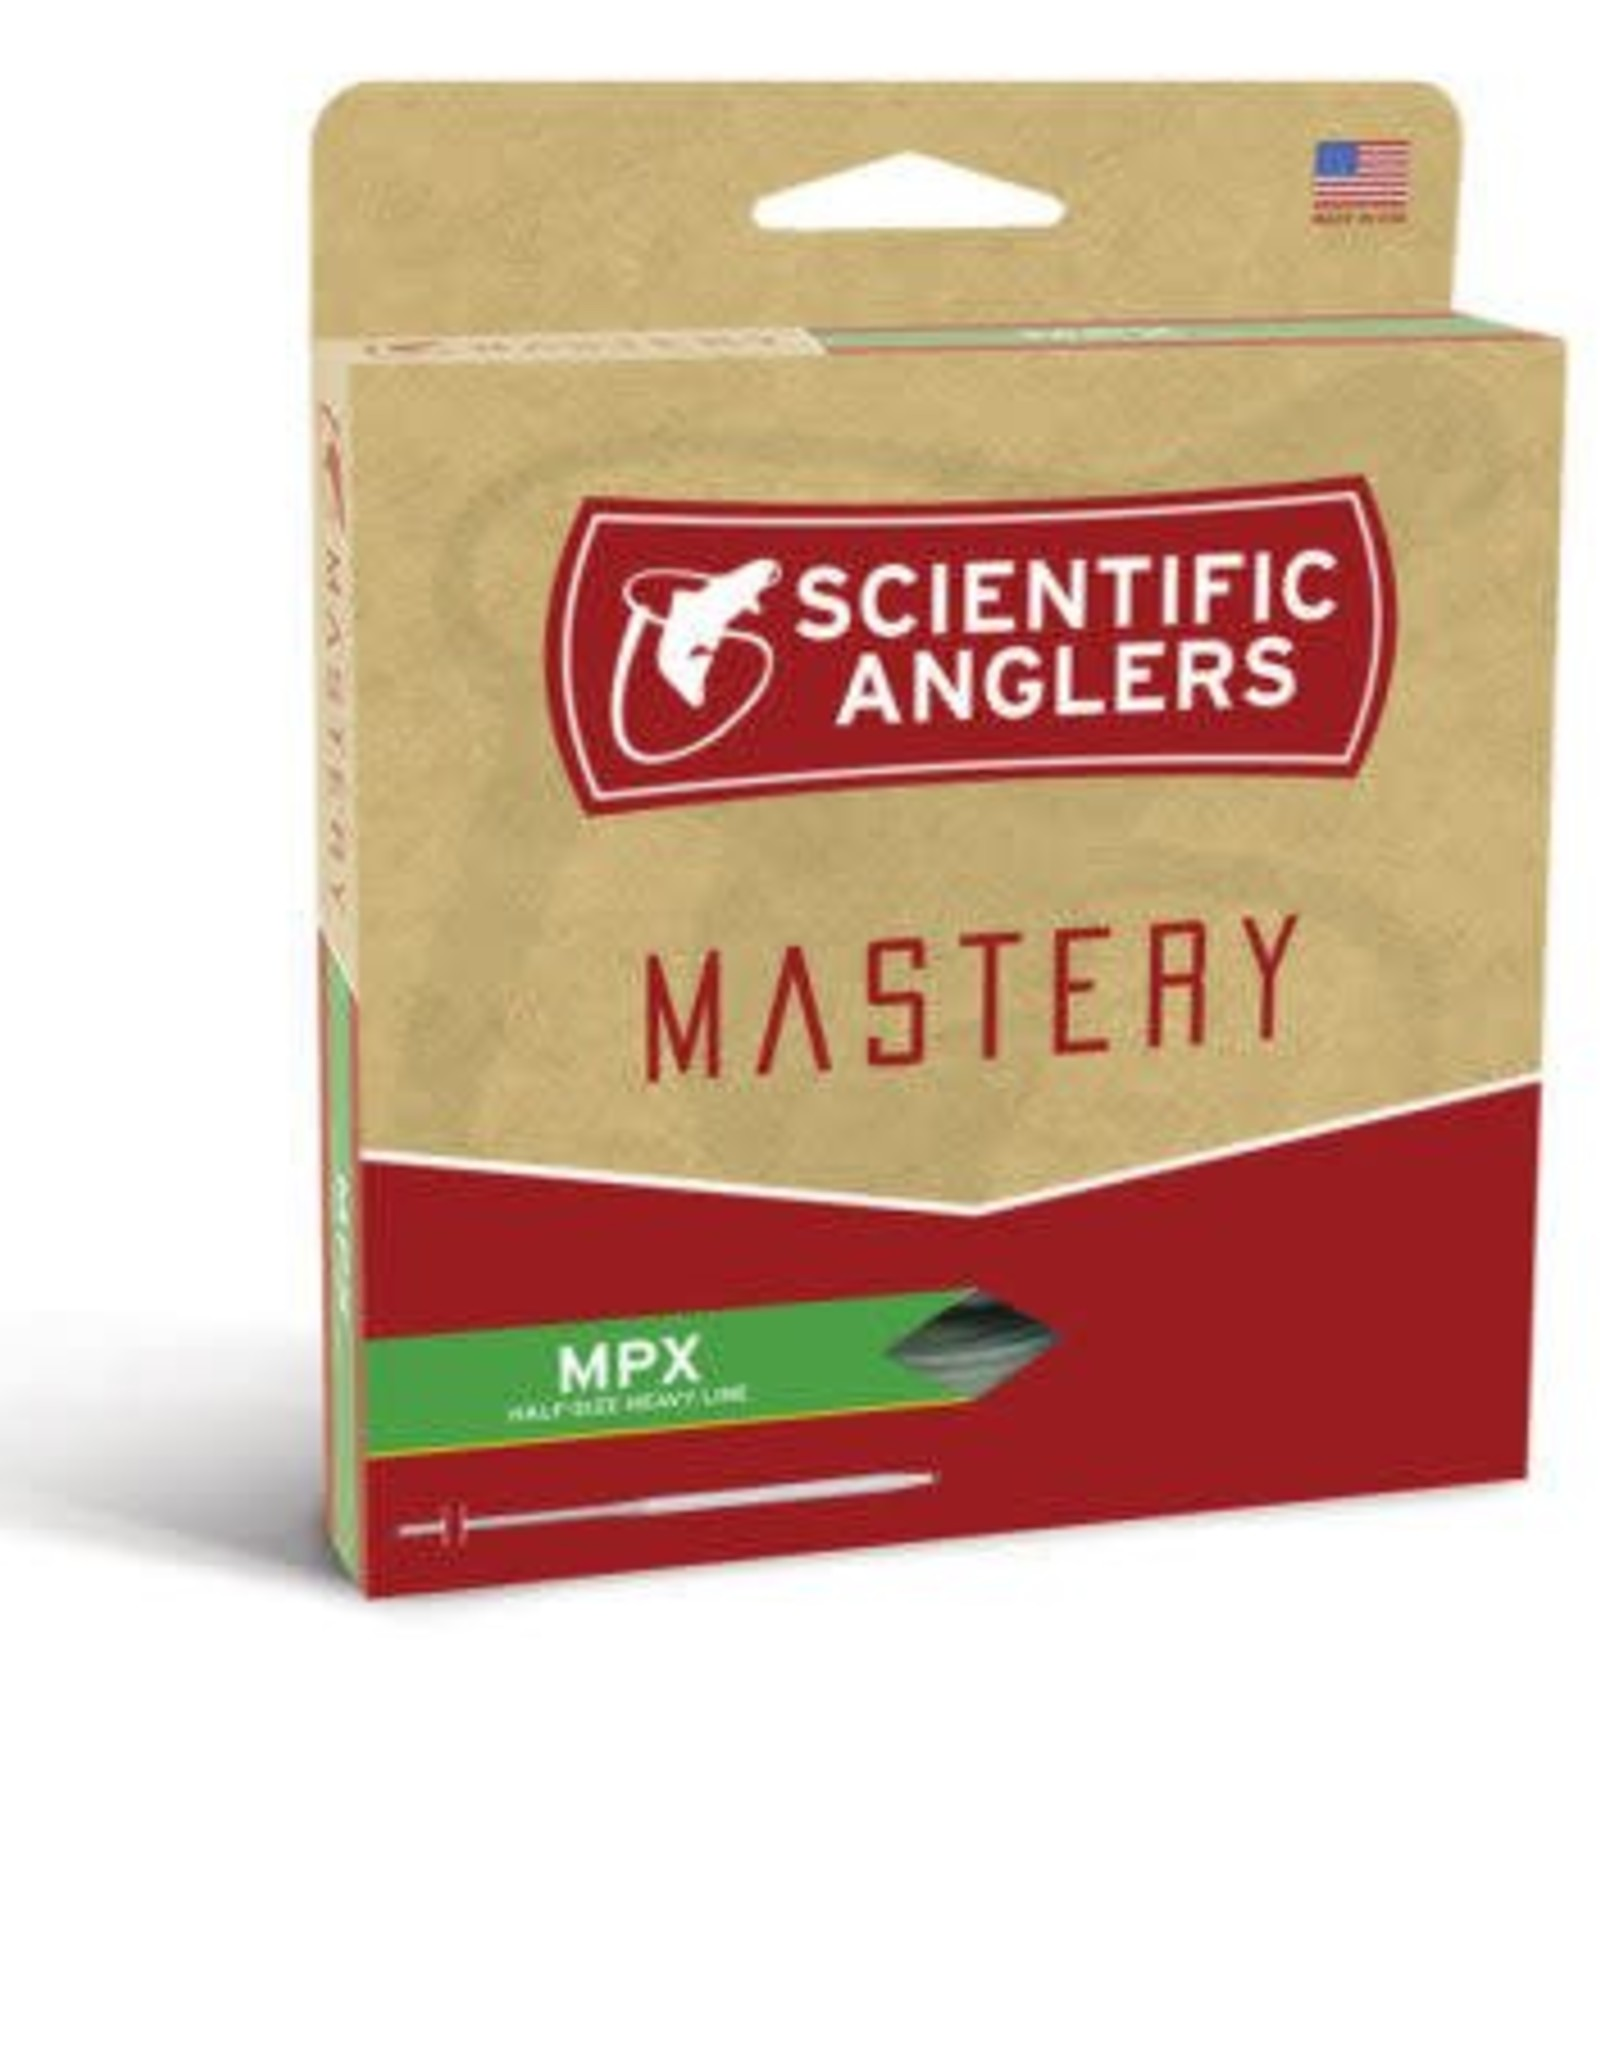 Scientific Anglers Scientific Anglers Mastery MPX